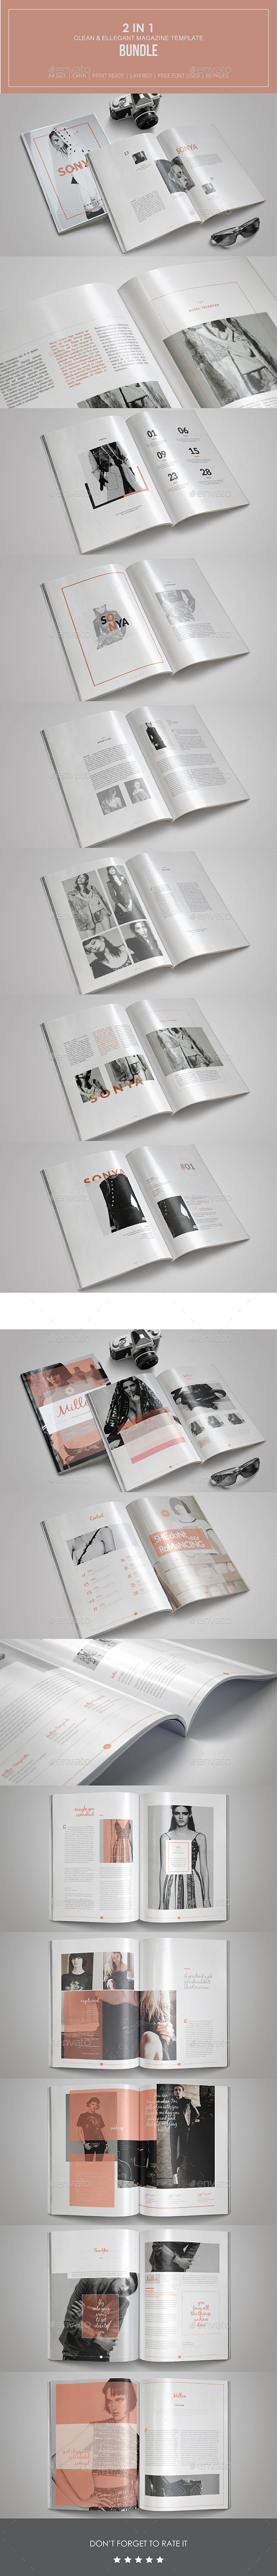 2 in 1 Clean & Ellegant Magazine Template - Magazines Print Templates